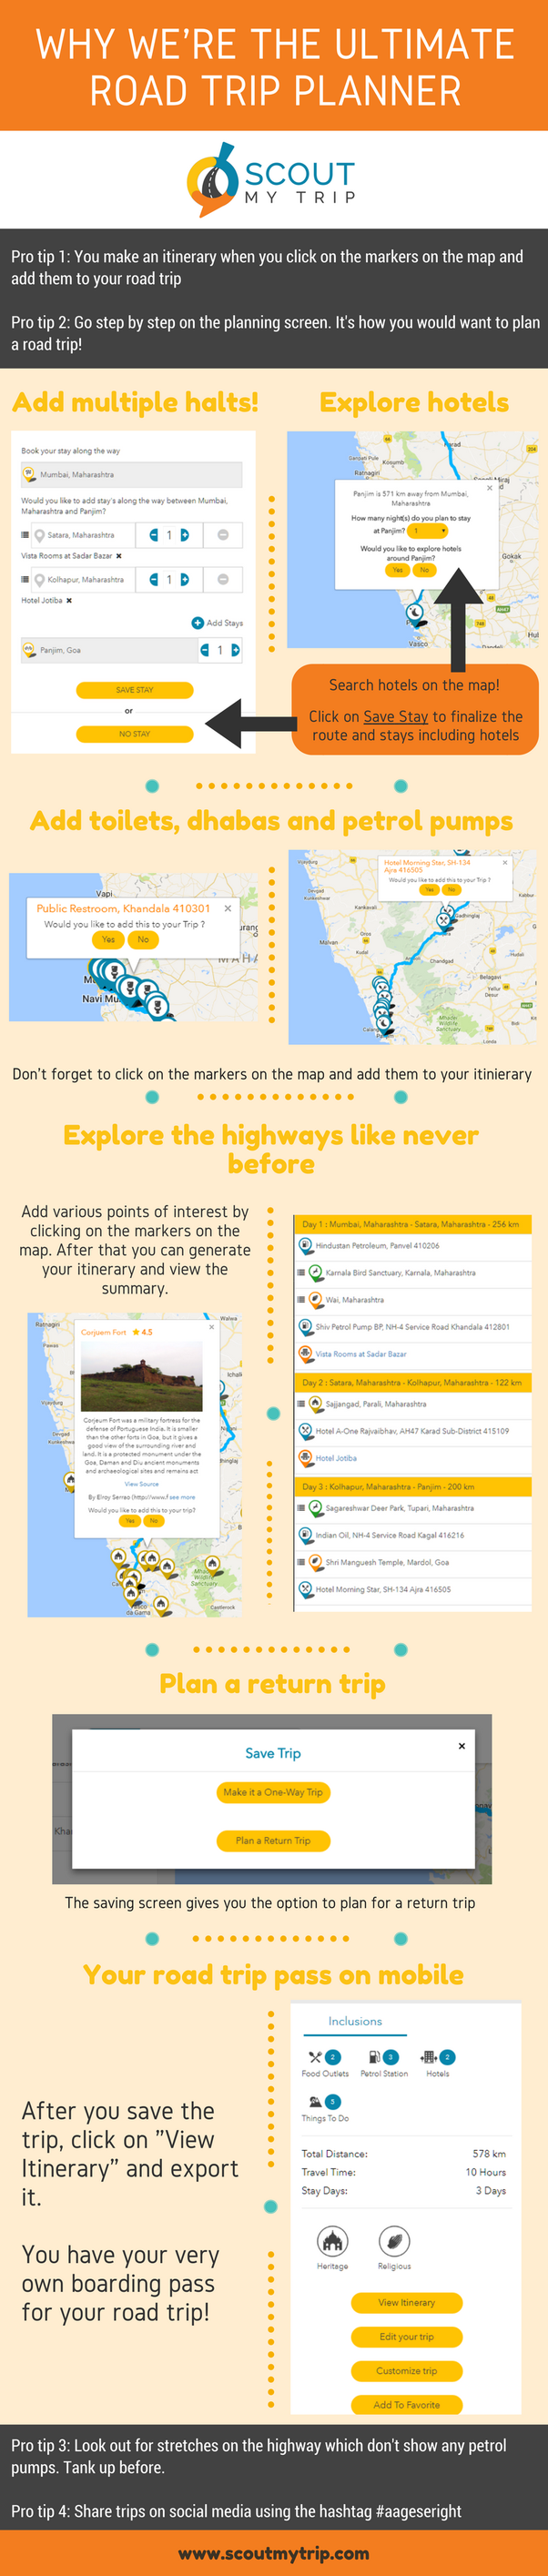 example if there is a route with potholes and bad roads you will get advice from the scoutmytrip road trip planning engine